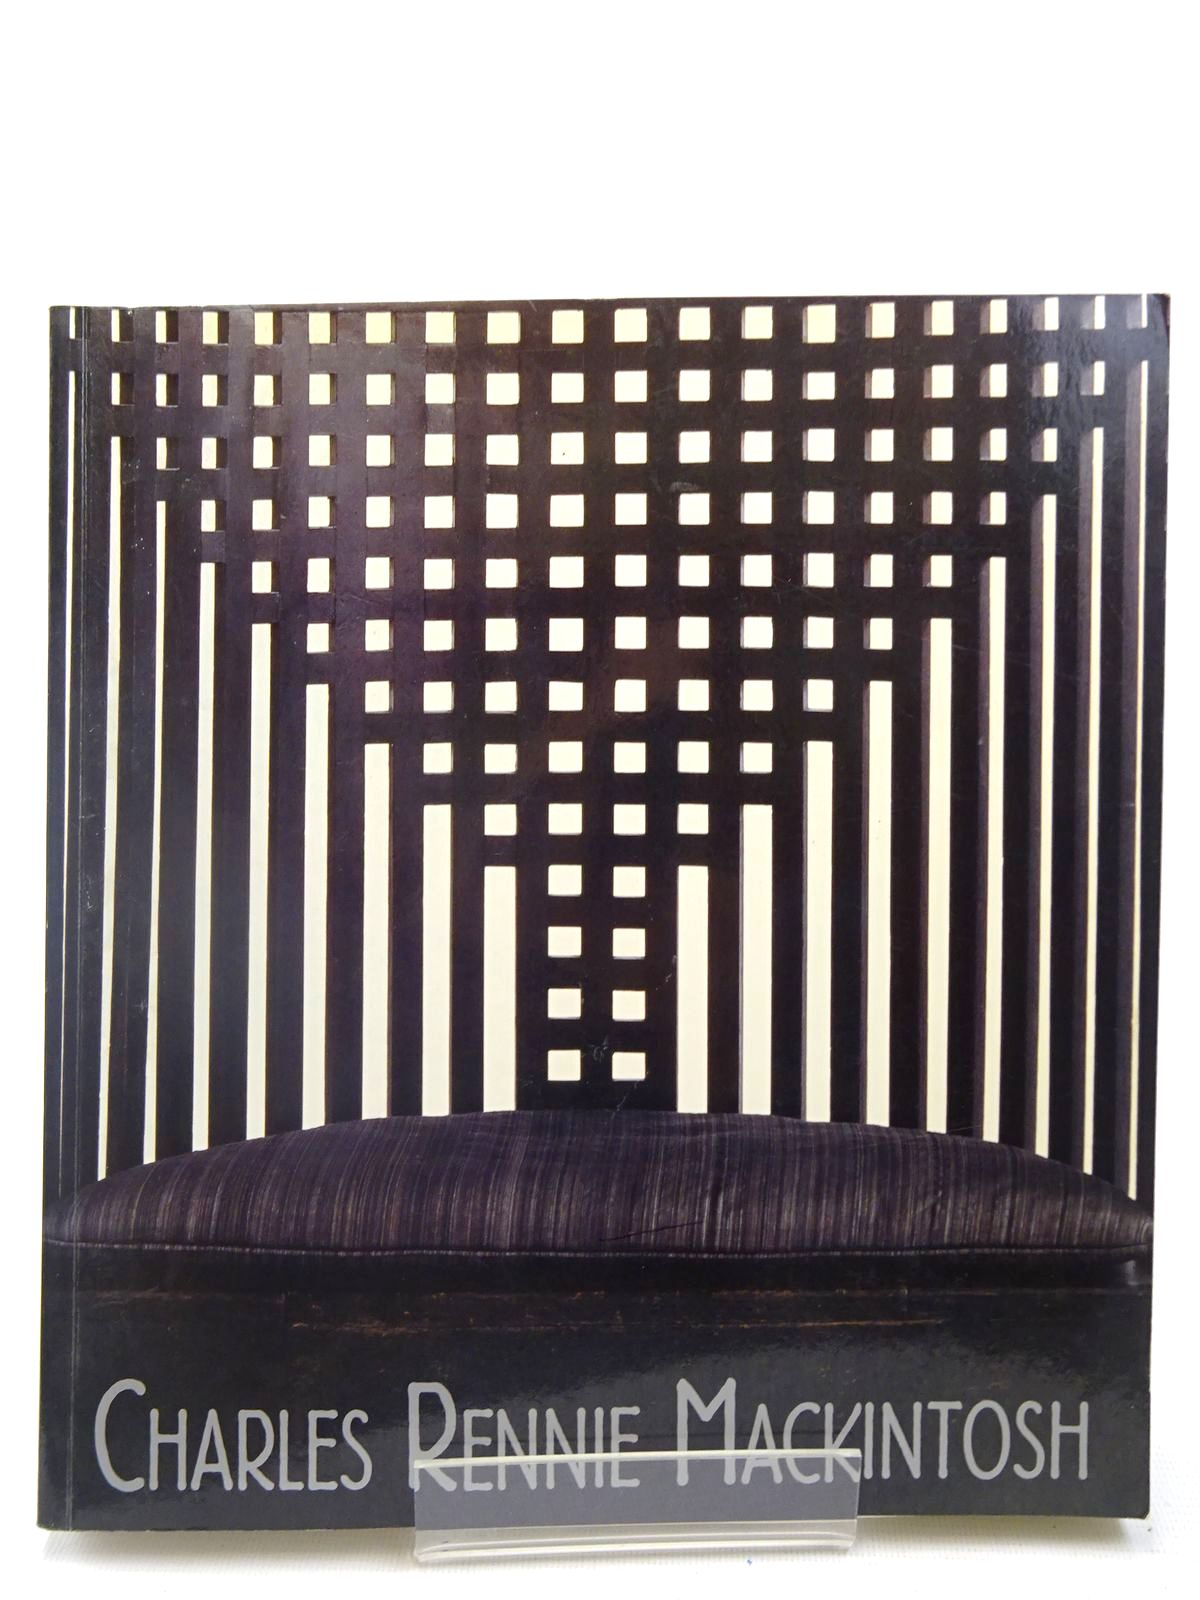 Photo of CHARLES RENNIE MACKINTOSH written by Kaplan, Wendy published by Glasgow Museums, Abbeville Press (STOCK CODE: 2127900)  for sale by Stella & Rose's Books